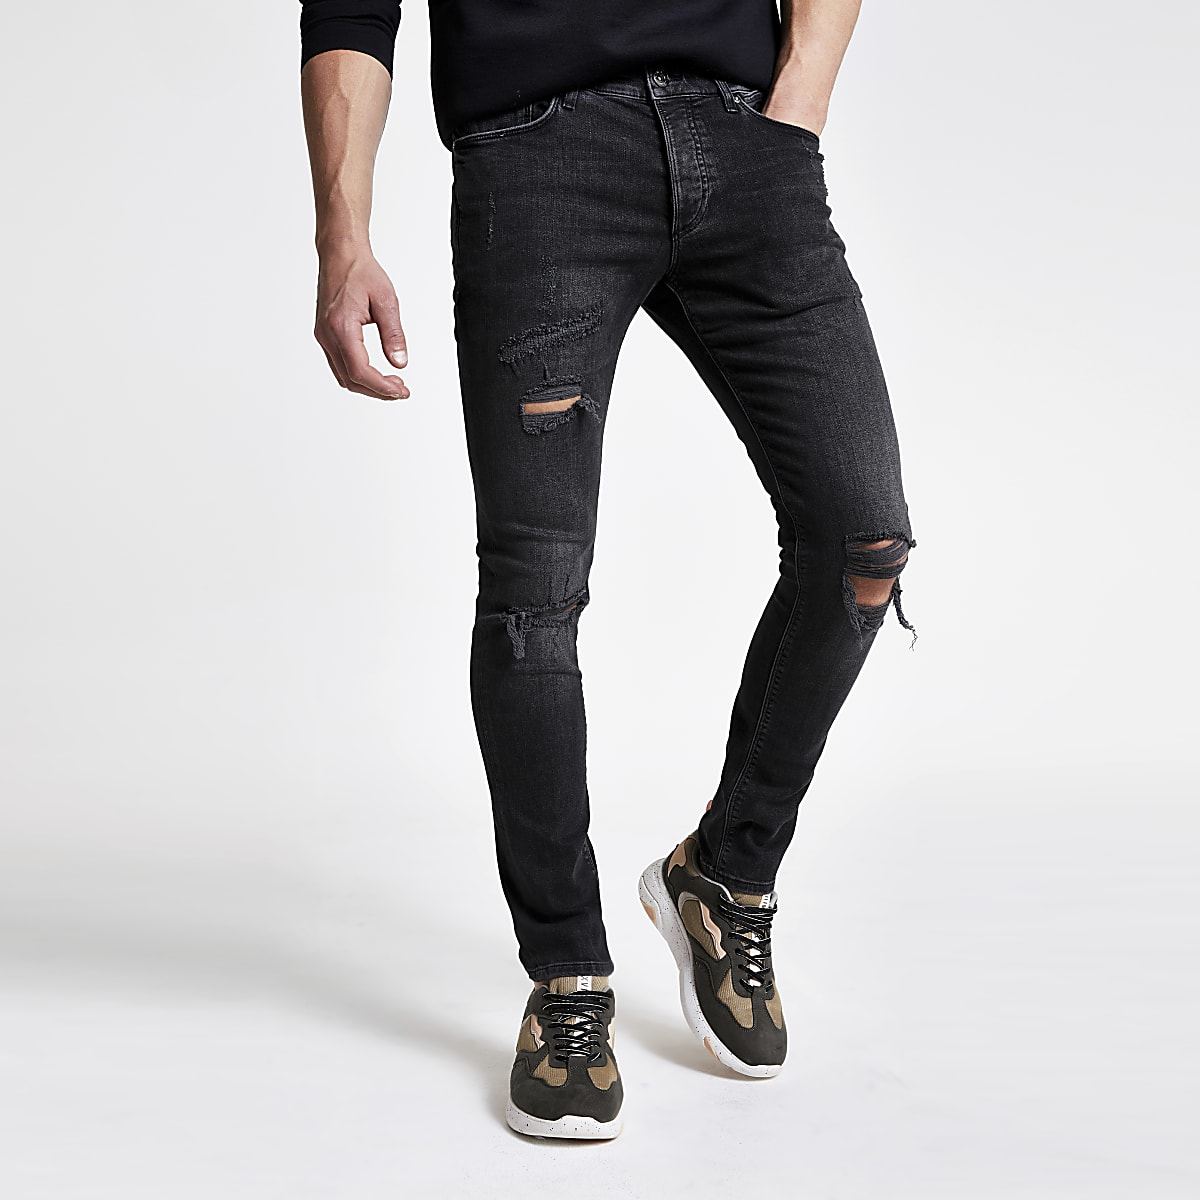 limited price popular style replicas Black wash ripped Sid skinny jeans